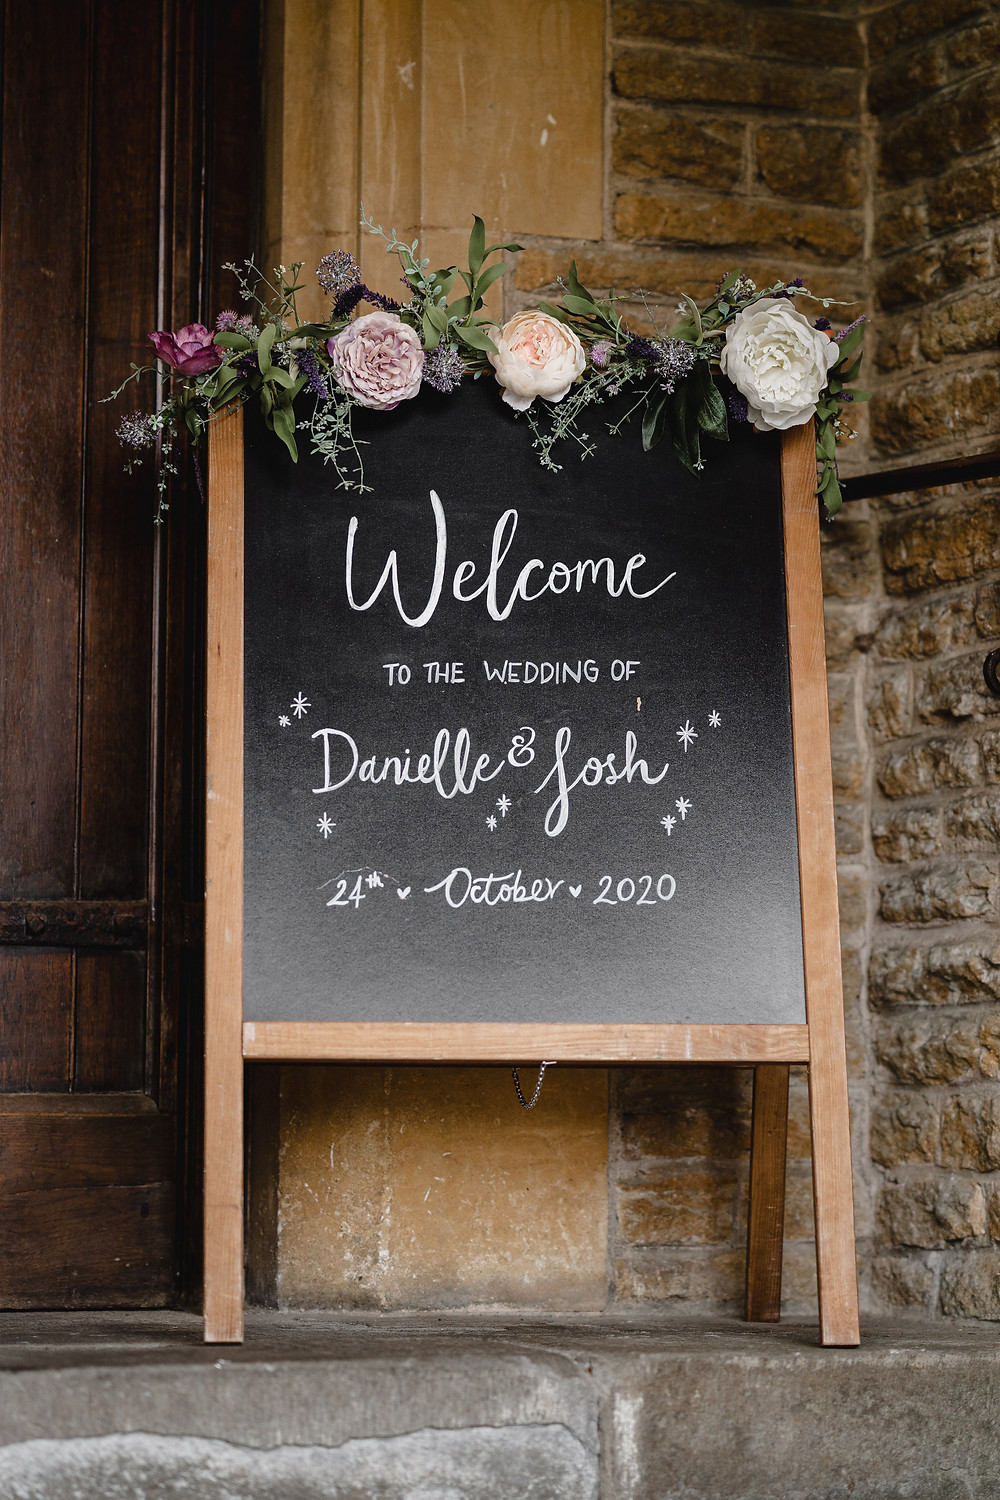 Reportage Style Wedding Photography Somerset. Professional Wedding Photography by Heather Bailey